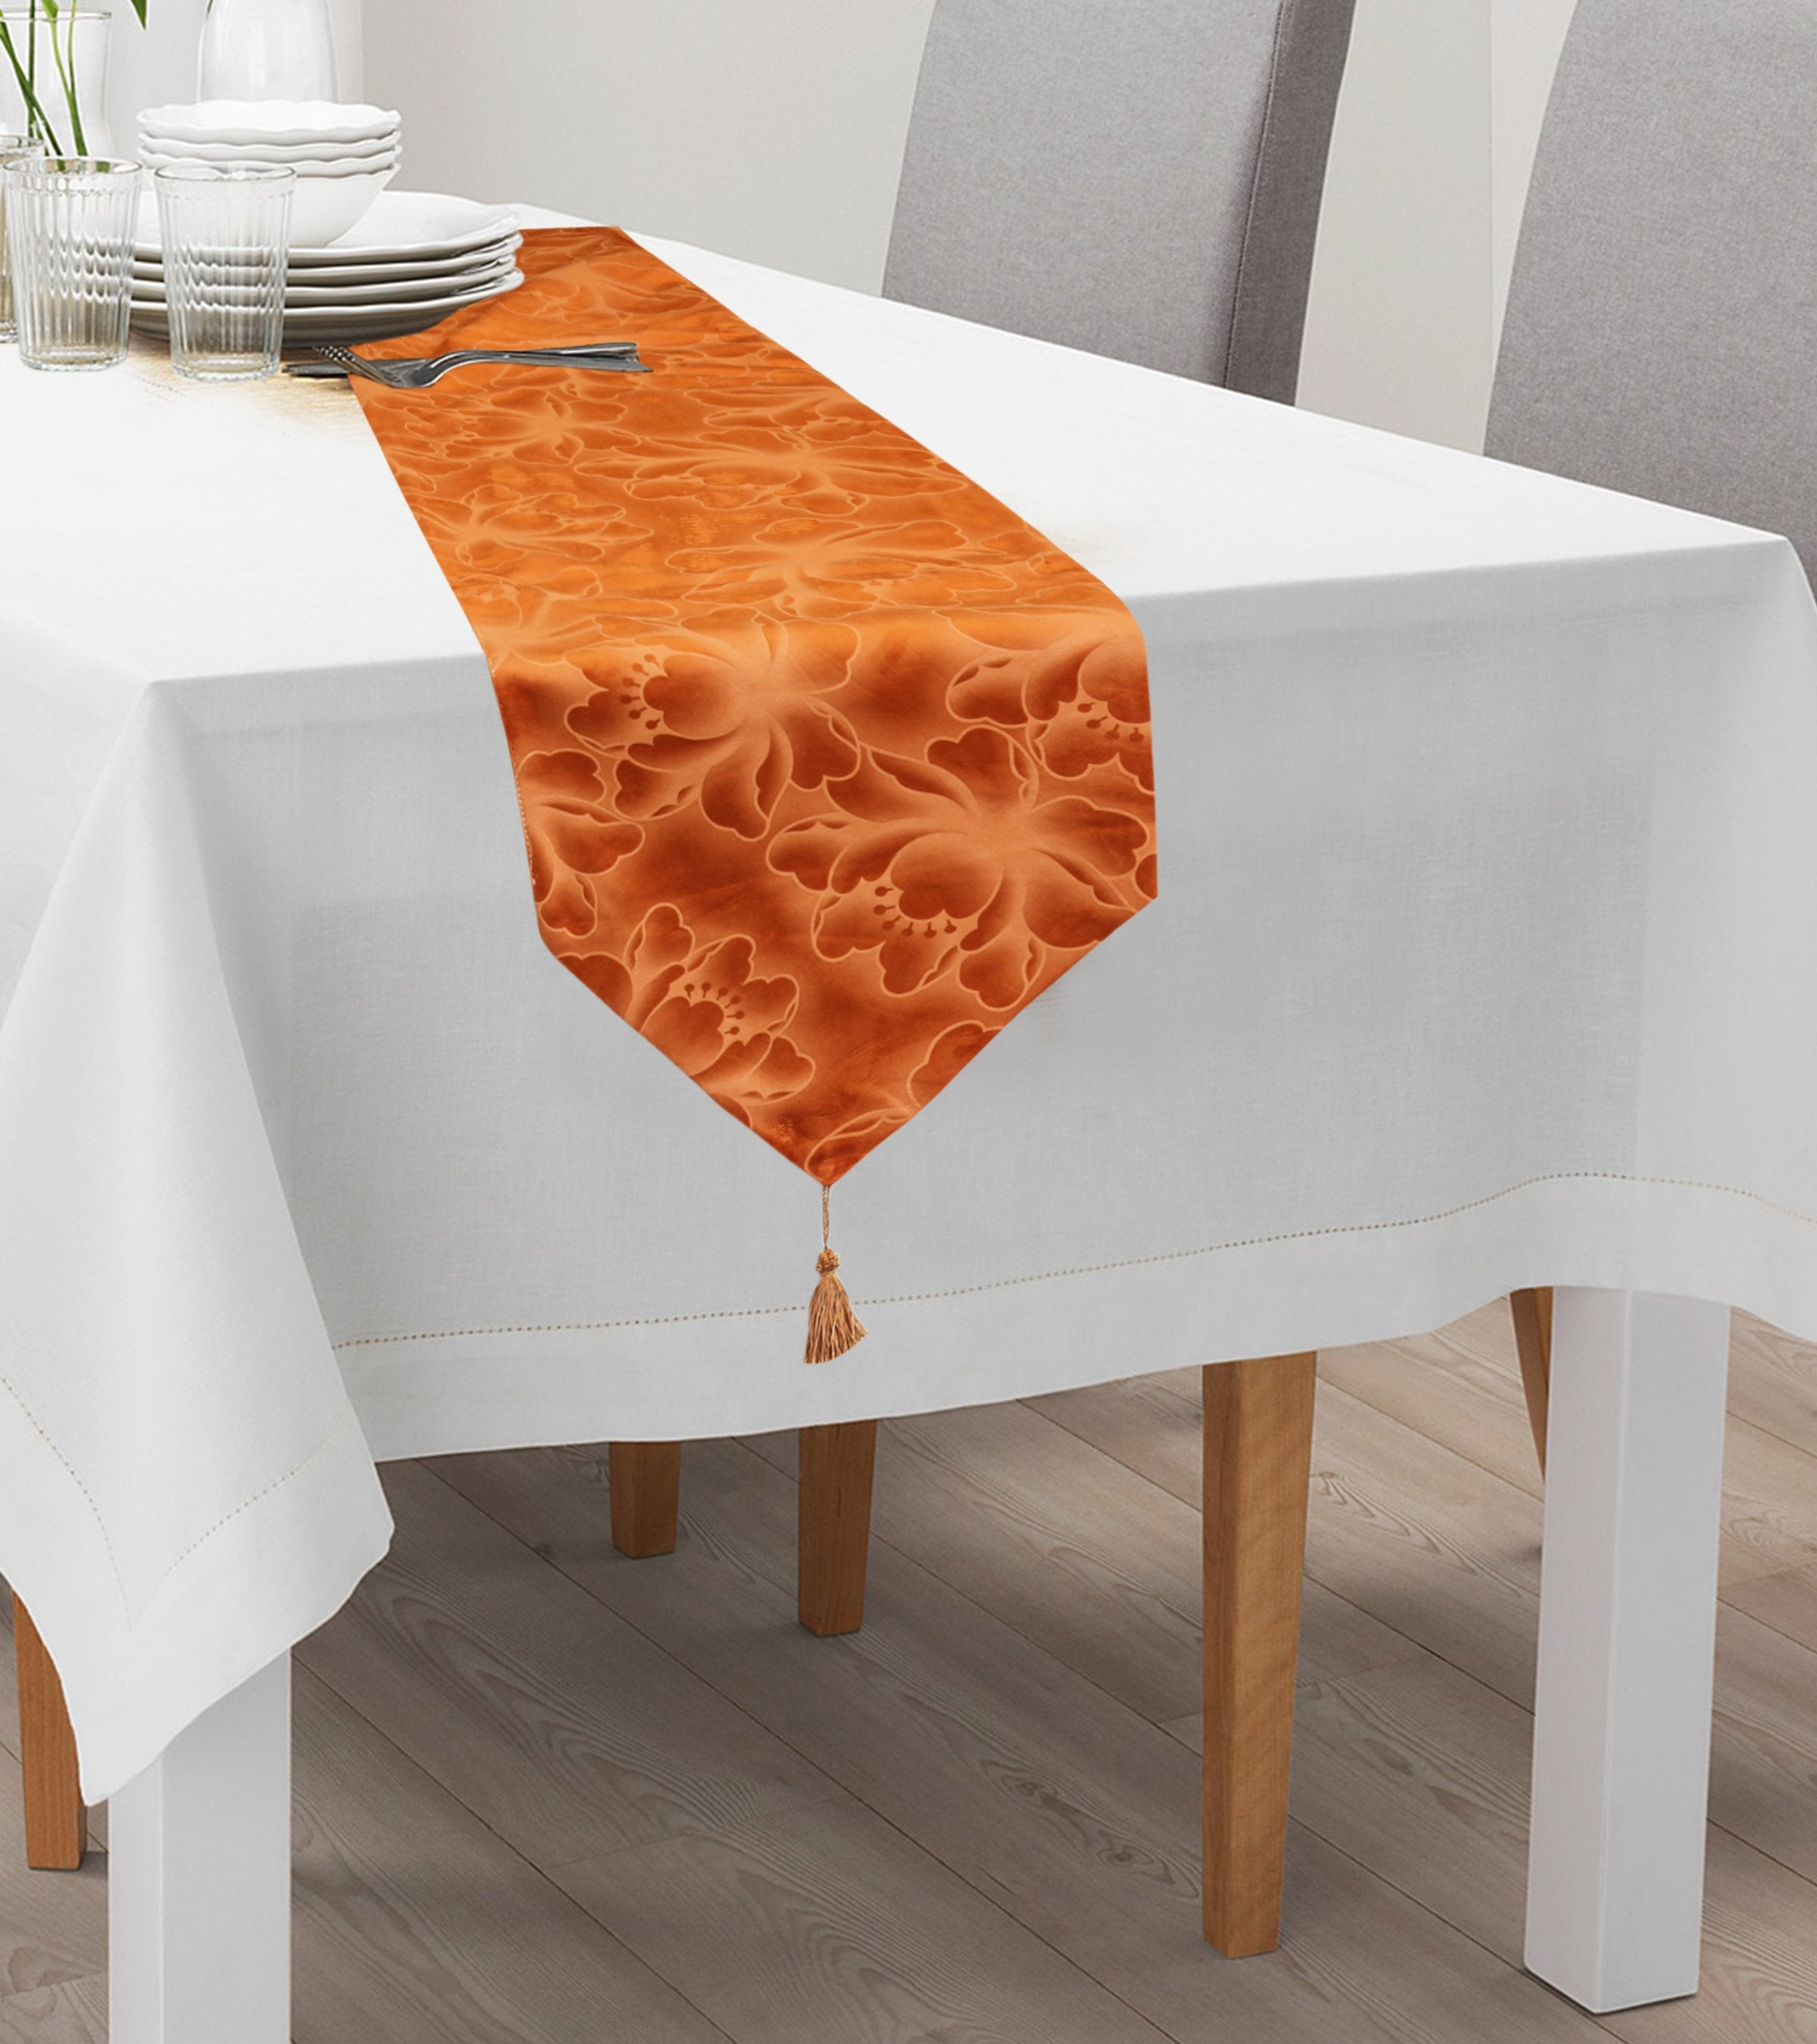 7 PCs Table Runner and Placemats Set